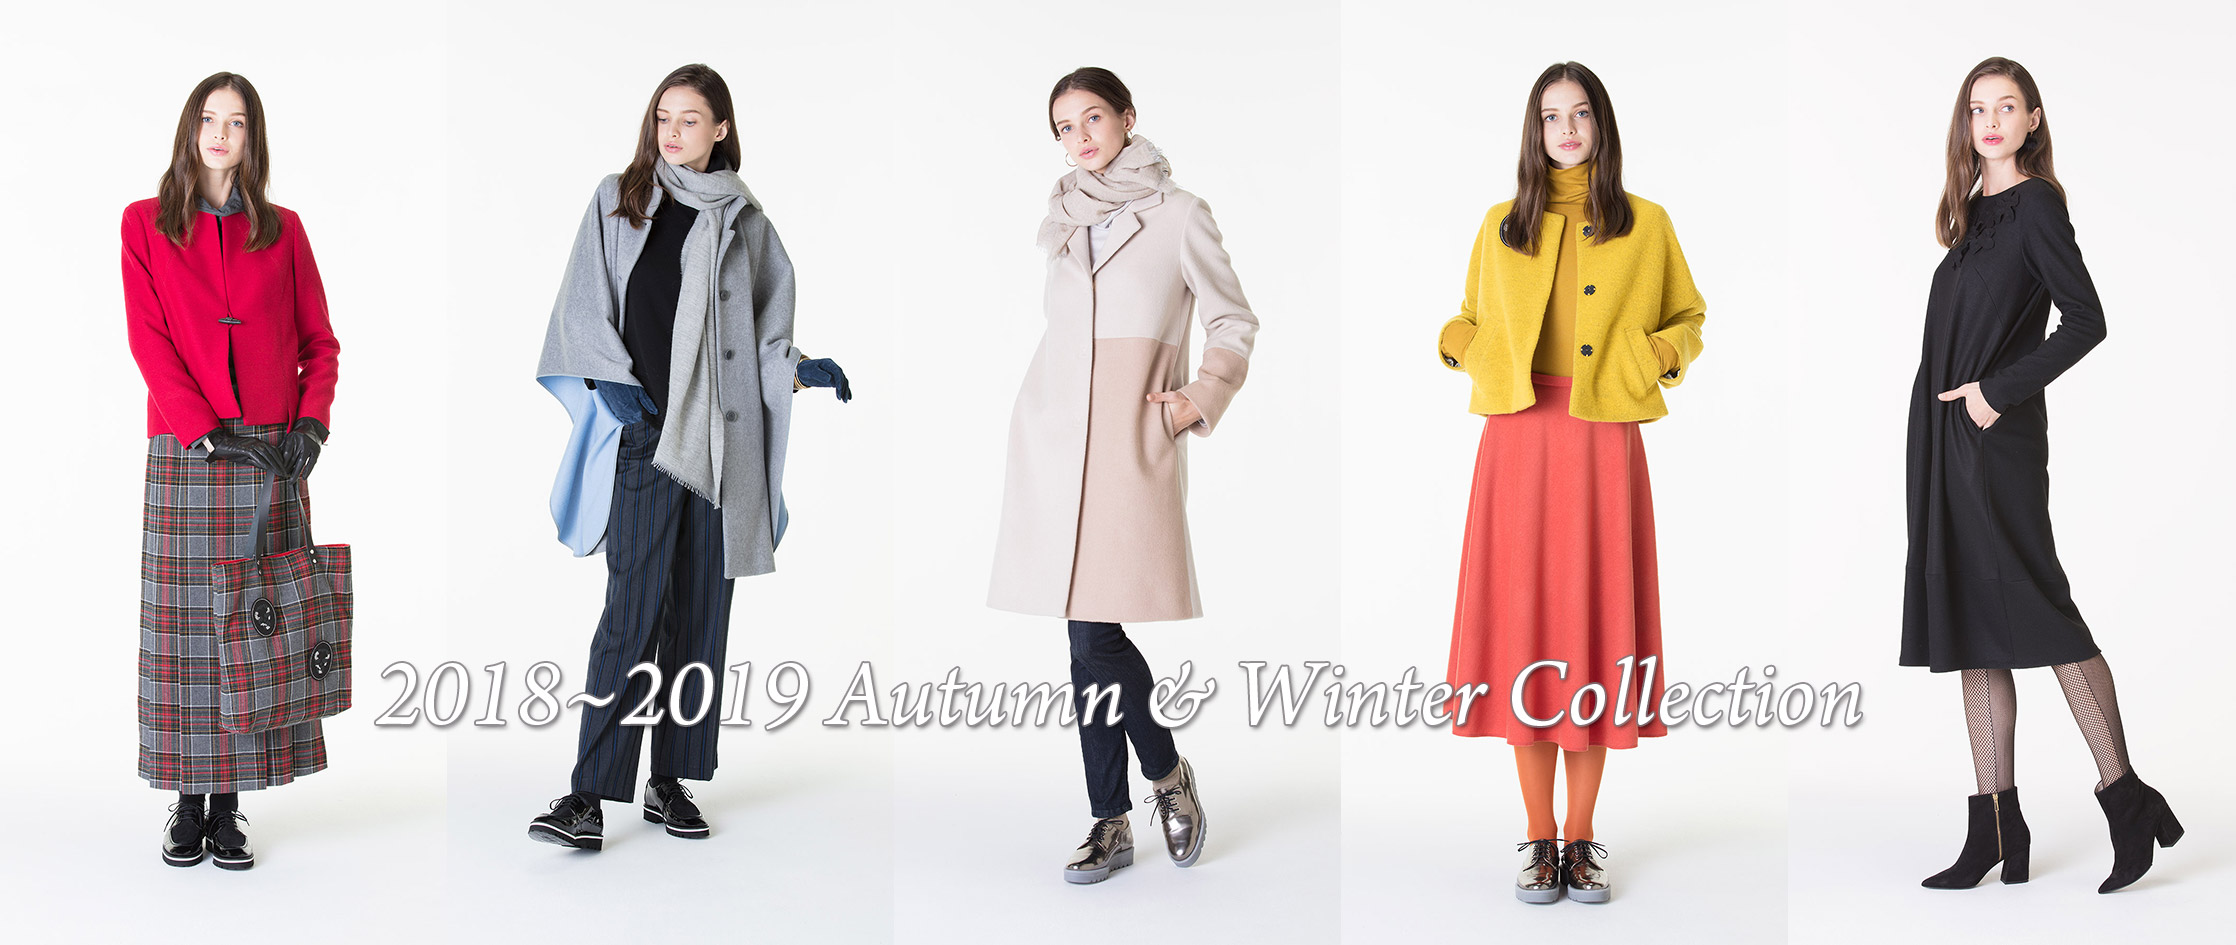 2018-19 Autumn & Winter Collection 1